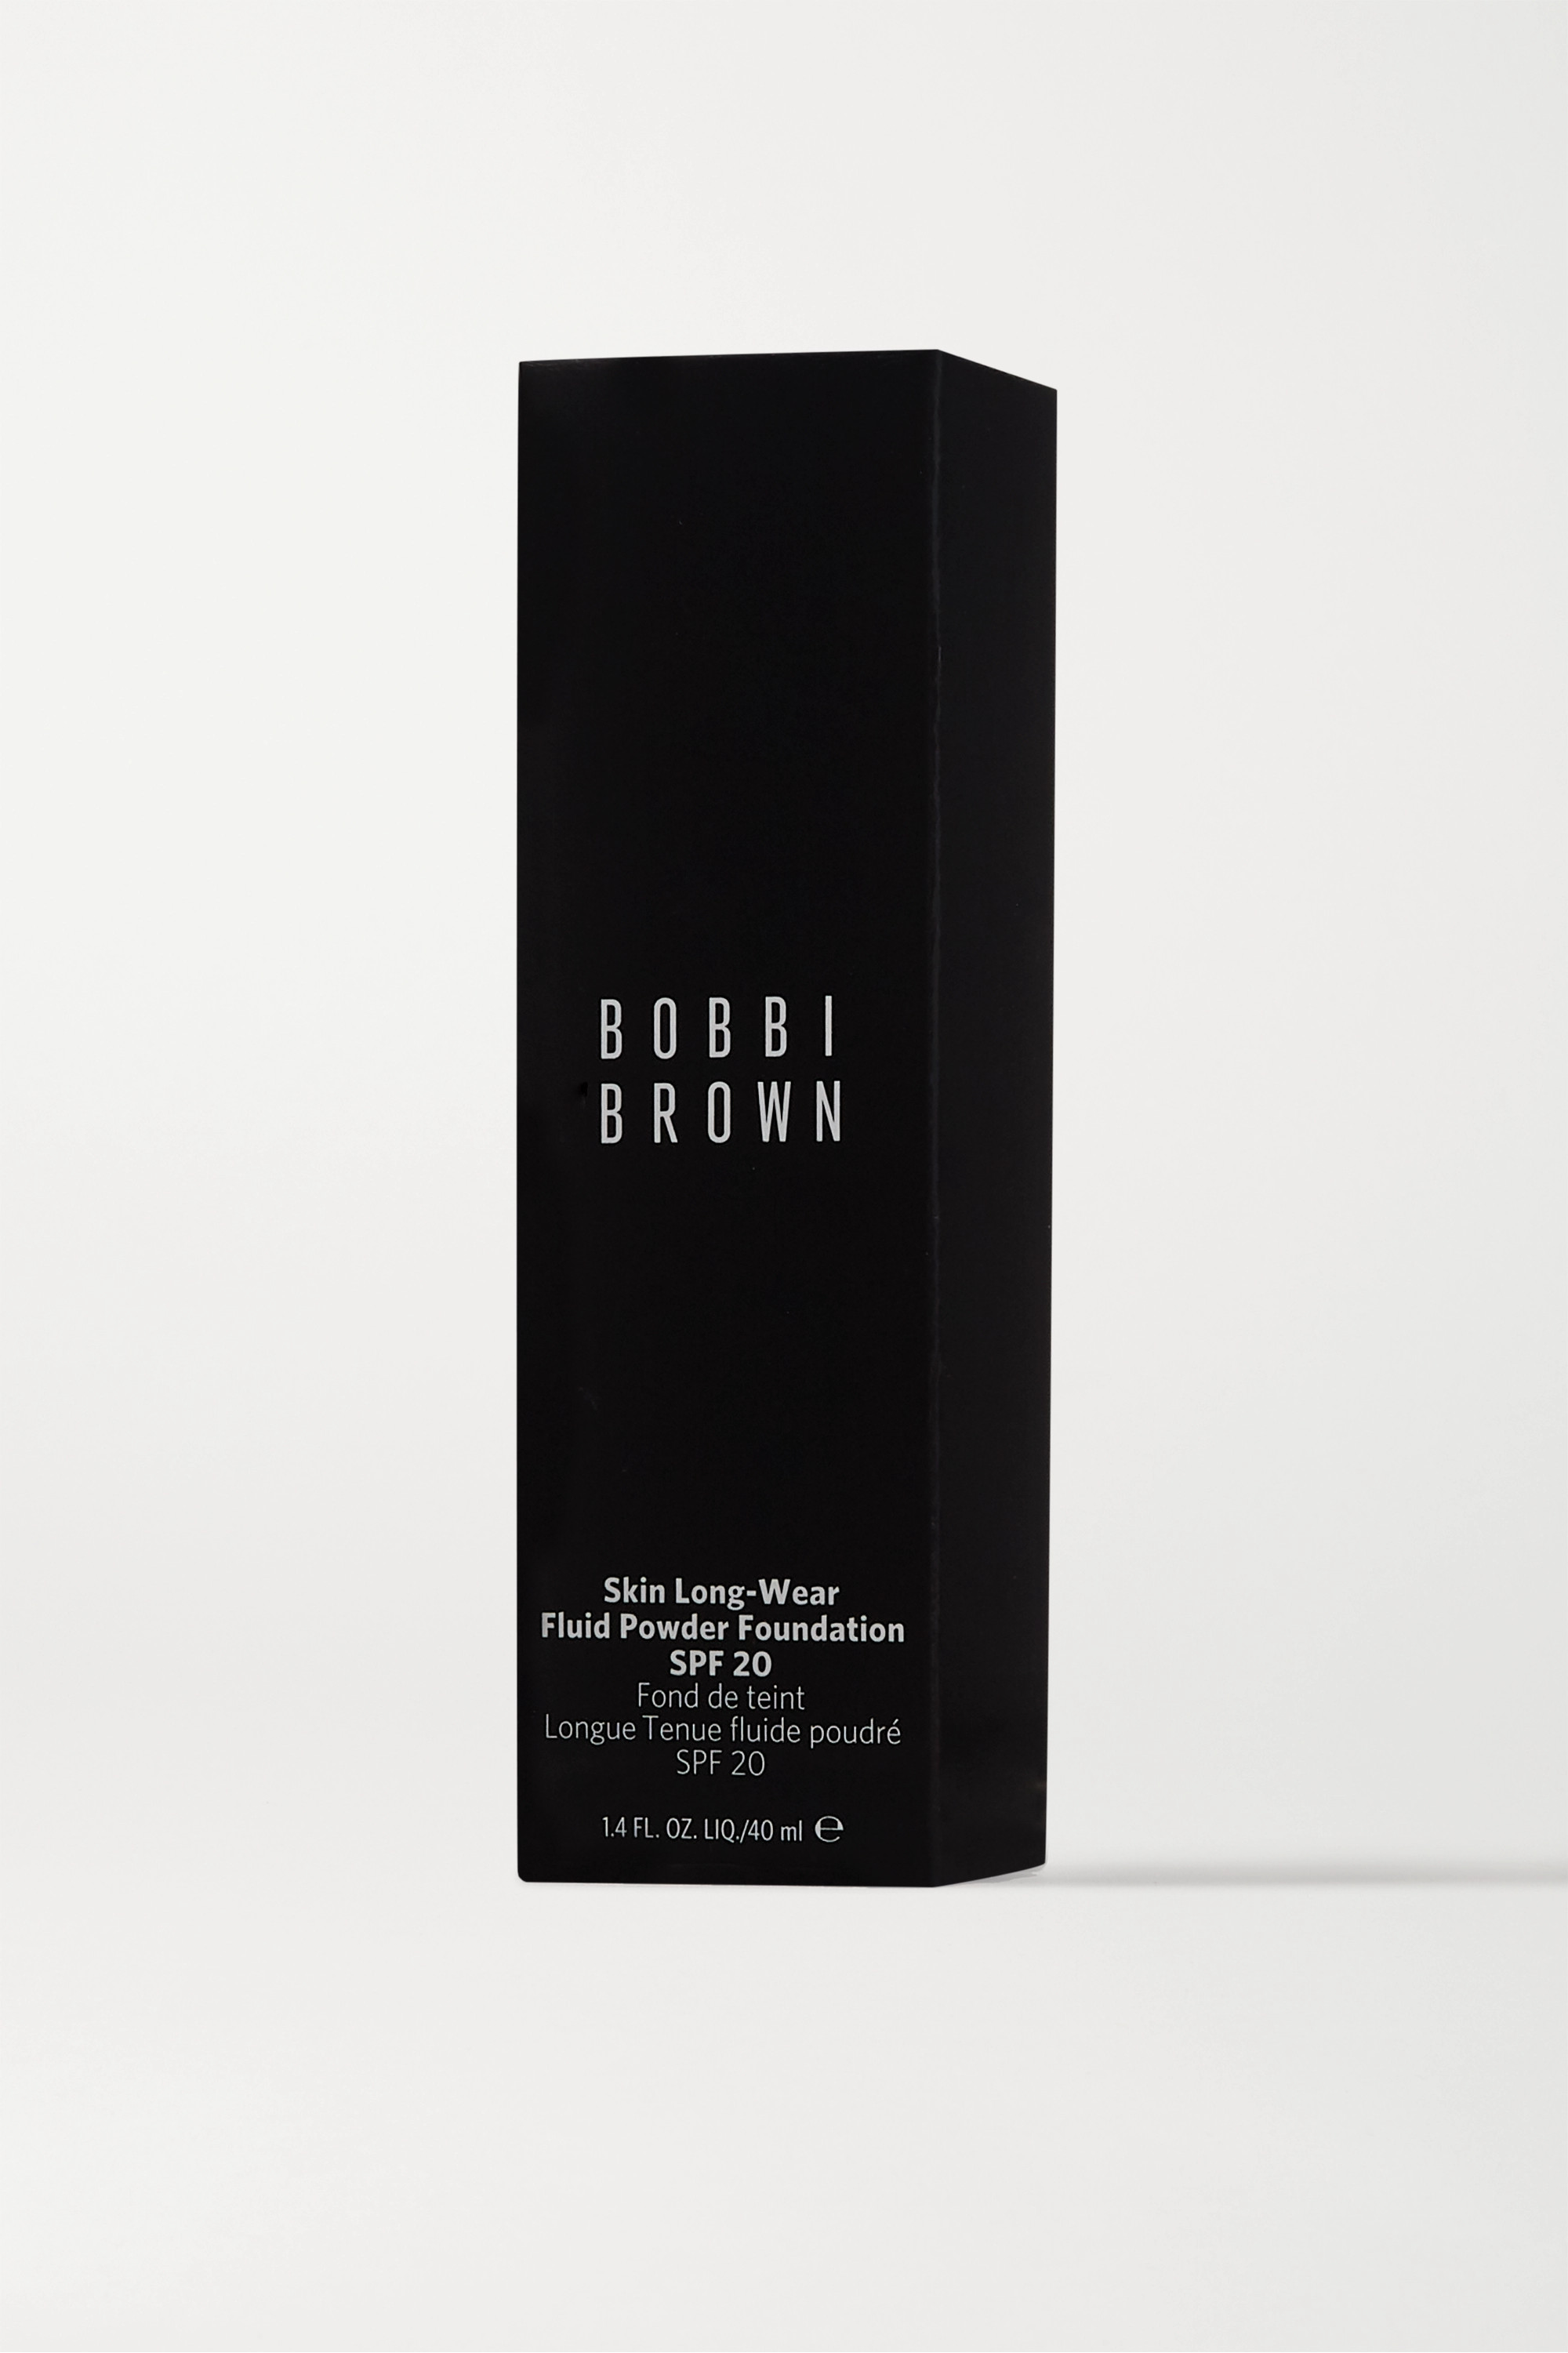 Bobbi Brown Skin Long-Wear Fluid Powder Foundation LSF 20 – Warm Almond – Foundation